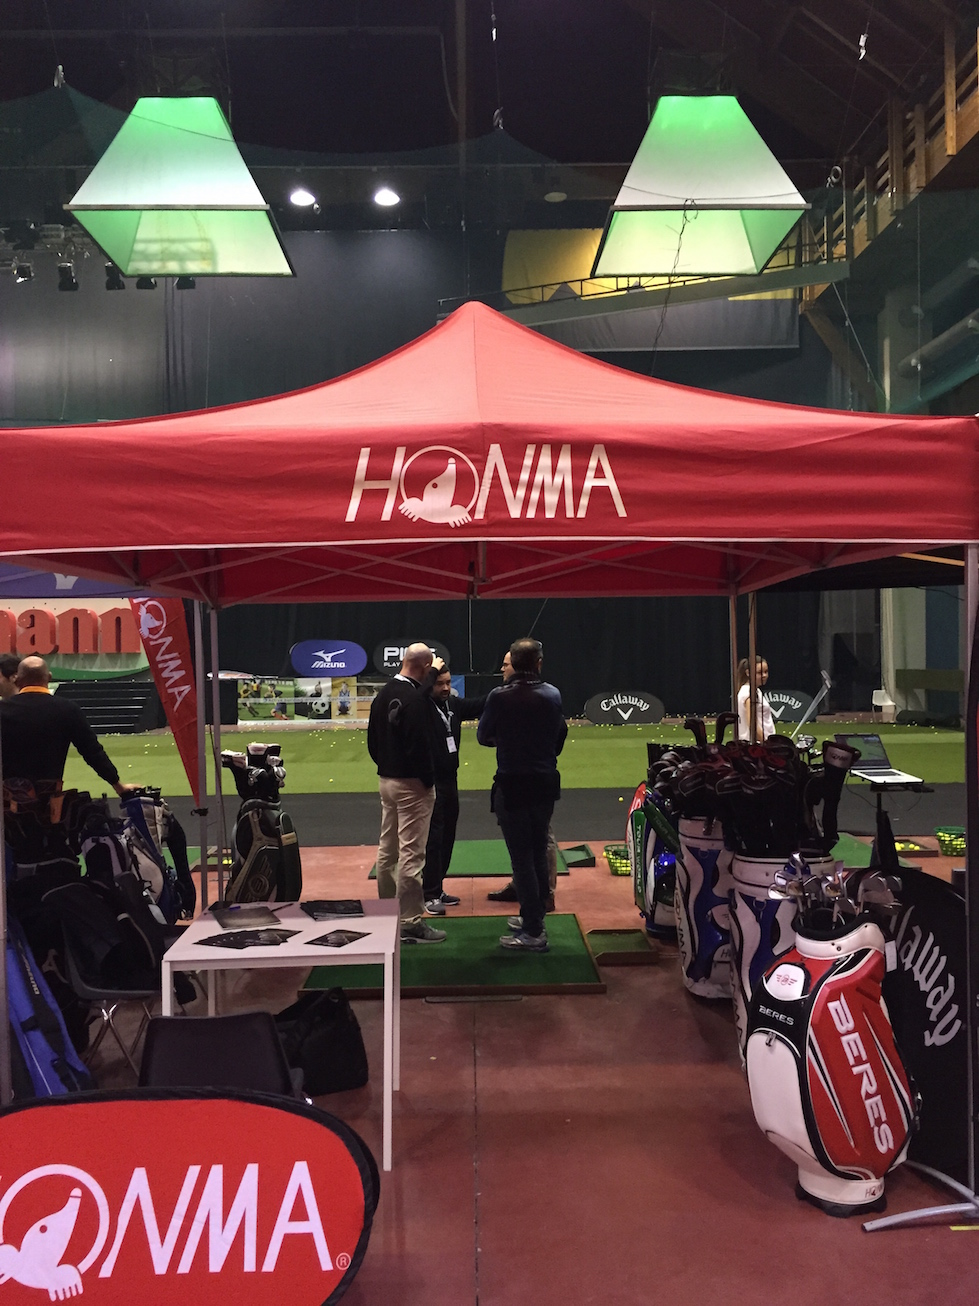 Fiera del Golf Parma 2015 le foto ed i video di Italian Golf Show e le prove dei materiali50 - Fiera del Golf Parma: le foto ed i video di Italian Golf Show